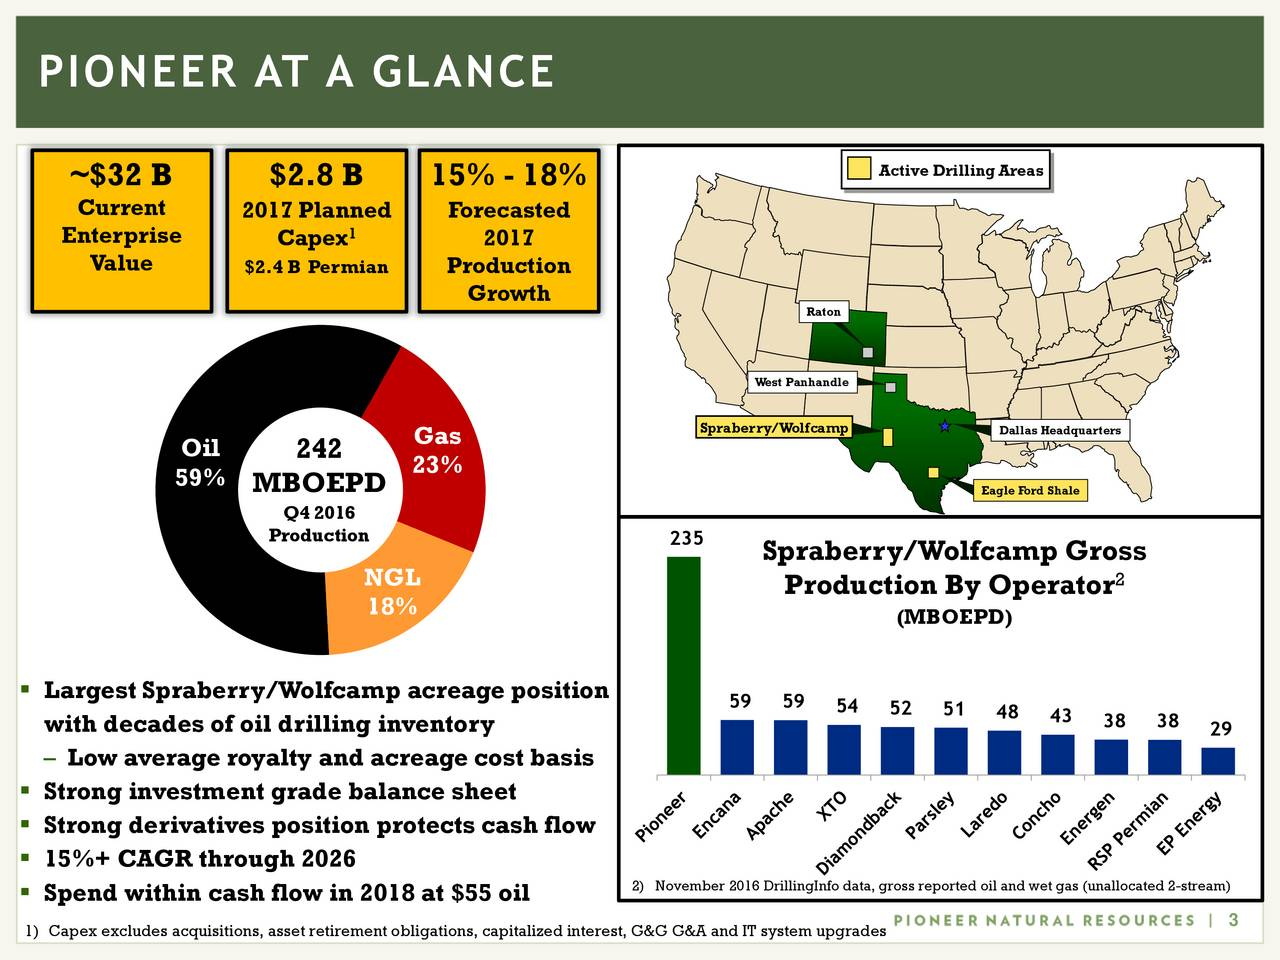 ~$32 B $2.8 B 15% - 18% Active Drilling Areas Current 2017 Planned Forecasted Enterprise Capex 1 2017 Value $2.4 B Permian Production Growth Raton West Panhandle Gas Spraberry/Wolfcamp Dallas Headquarters Oil 242 59% 23% MBOEPD Eagle Ford Shale Q4 2016 Production 235 Spraberry/Wolfcamp Gross NGL Production By Operator 2 18% (MBOEPD) Largest Spraberry/Wolfcamp acreage position 59 59 54 52 51 48 43 38 38 with decades of oil drilling inventory 29 Low average royalty and acreage cost basis Strong investment grade balance sheet Strong derivatives position protects cash flow 15%+ CAGR through 2026 Spend within cash flow in 2018 at $55 oil 2) November 2016 DrillingInfo data, gross reported oil and wet gas (unallocated 2-stream) 3 1) Capex excludes acquisitions, asset retirement obligations, capitalized interest, G&G G&A and IT system upgrades